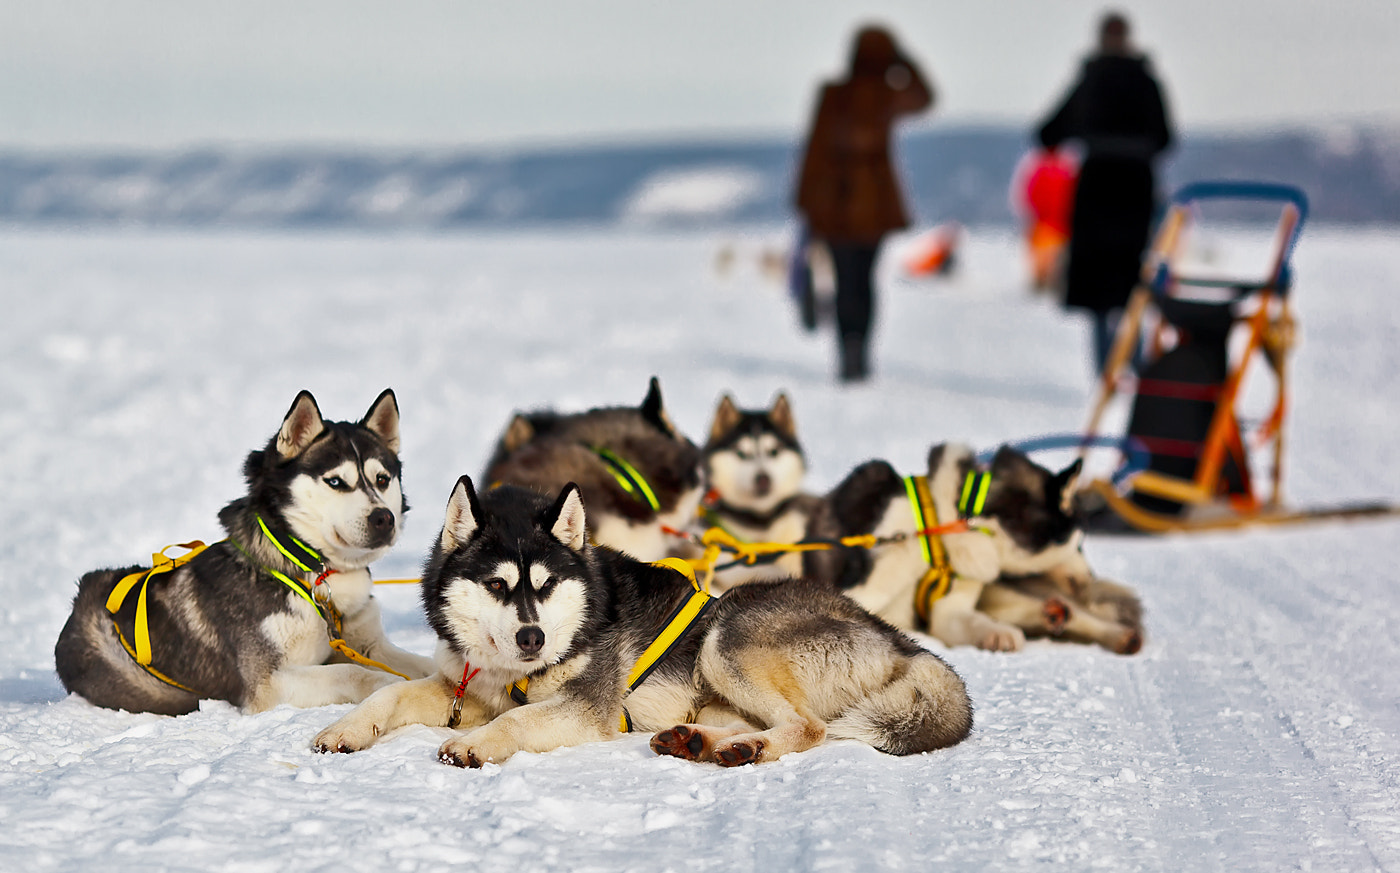 Photograph A sled dog in his element. by Сергей Щербатюк on 500px